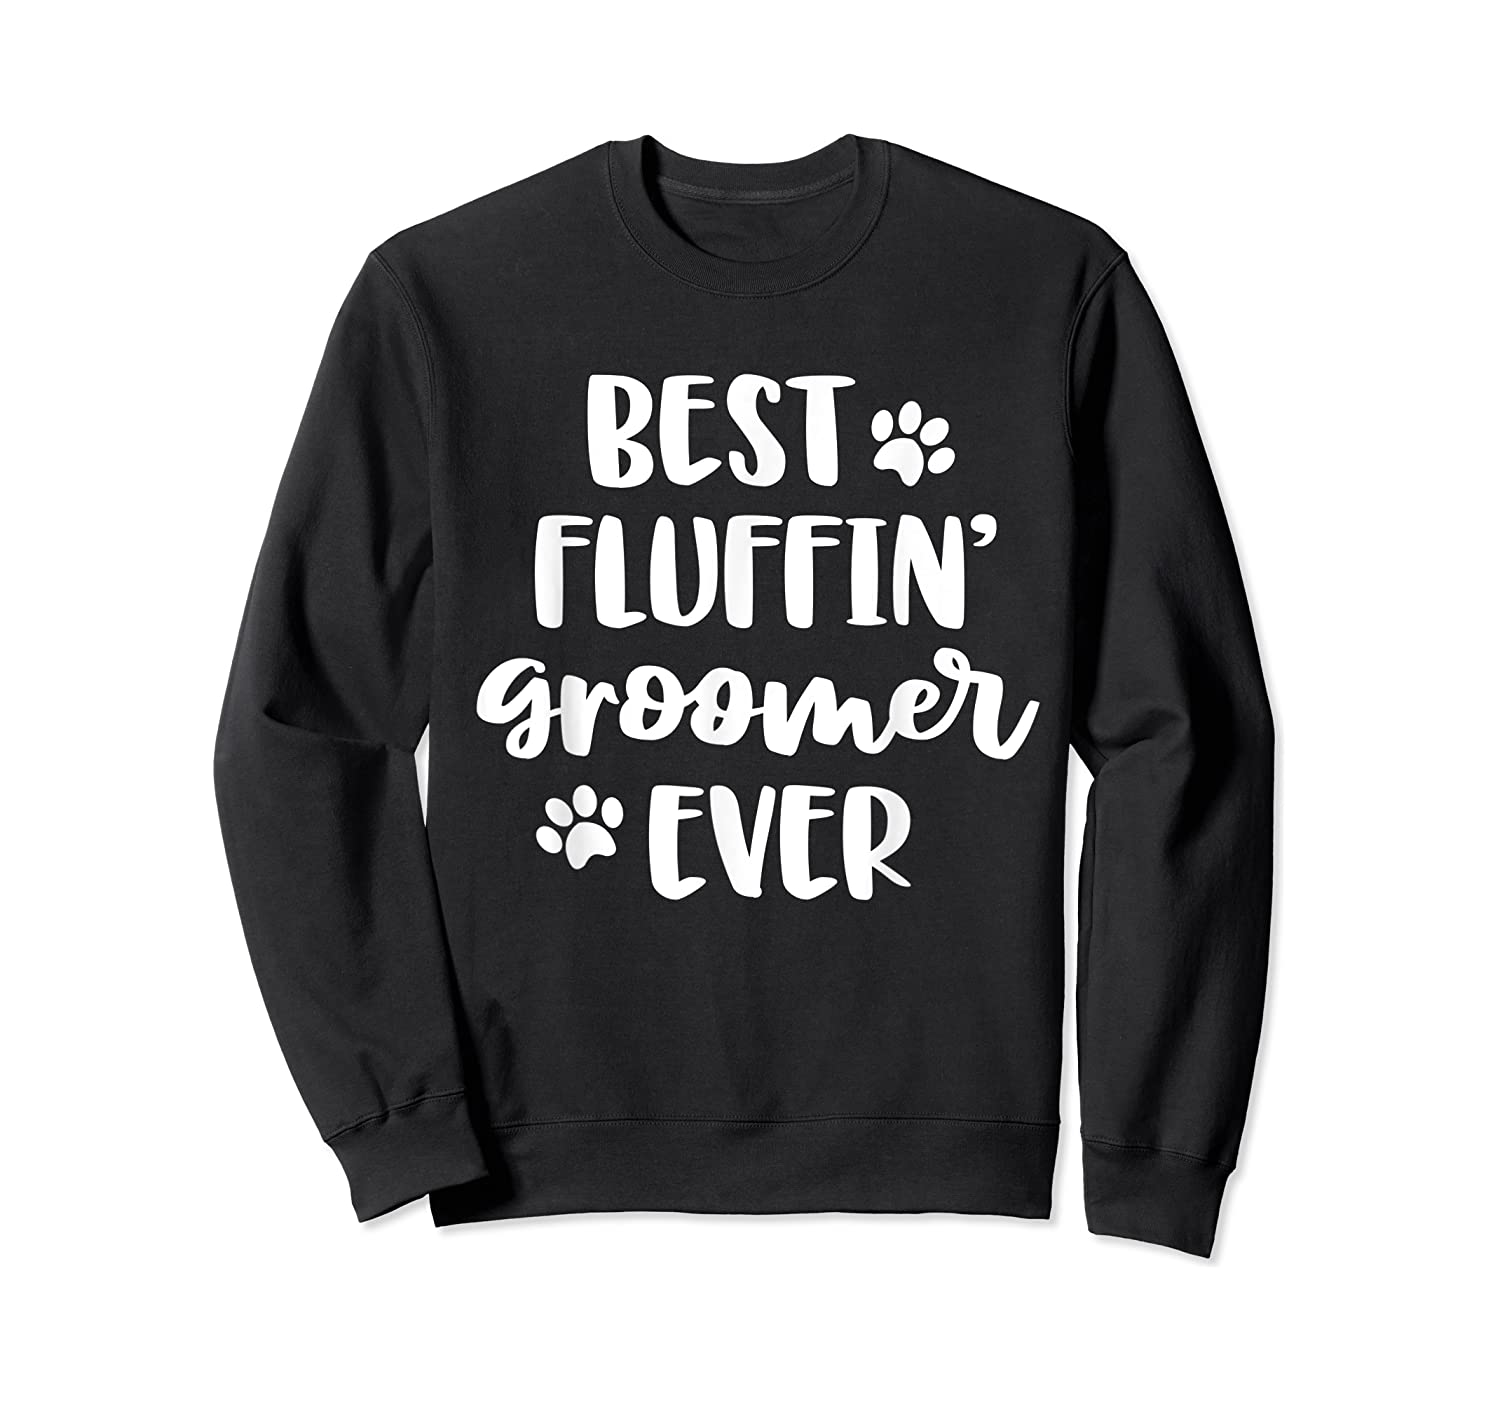 Funny Dog Grooming Gift Best Fluffin' Groomer Ever Shirts Crewneck Sweater